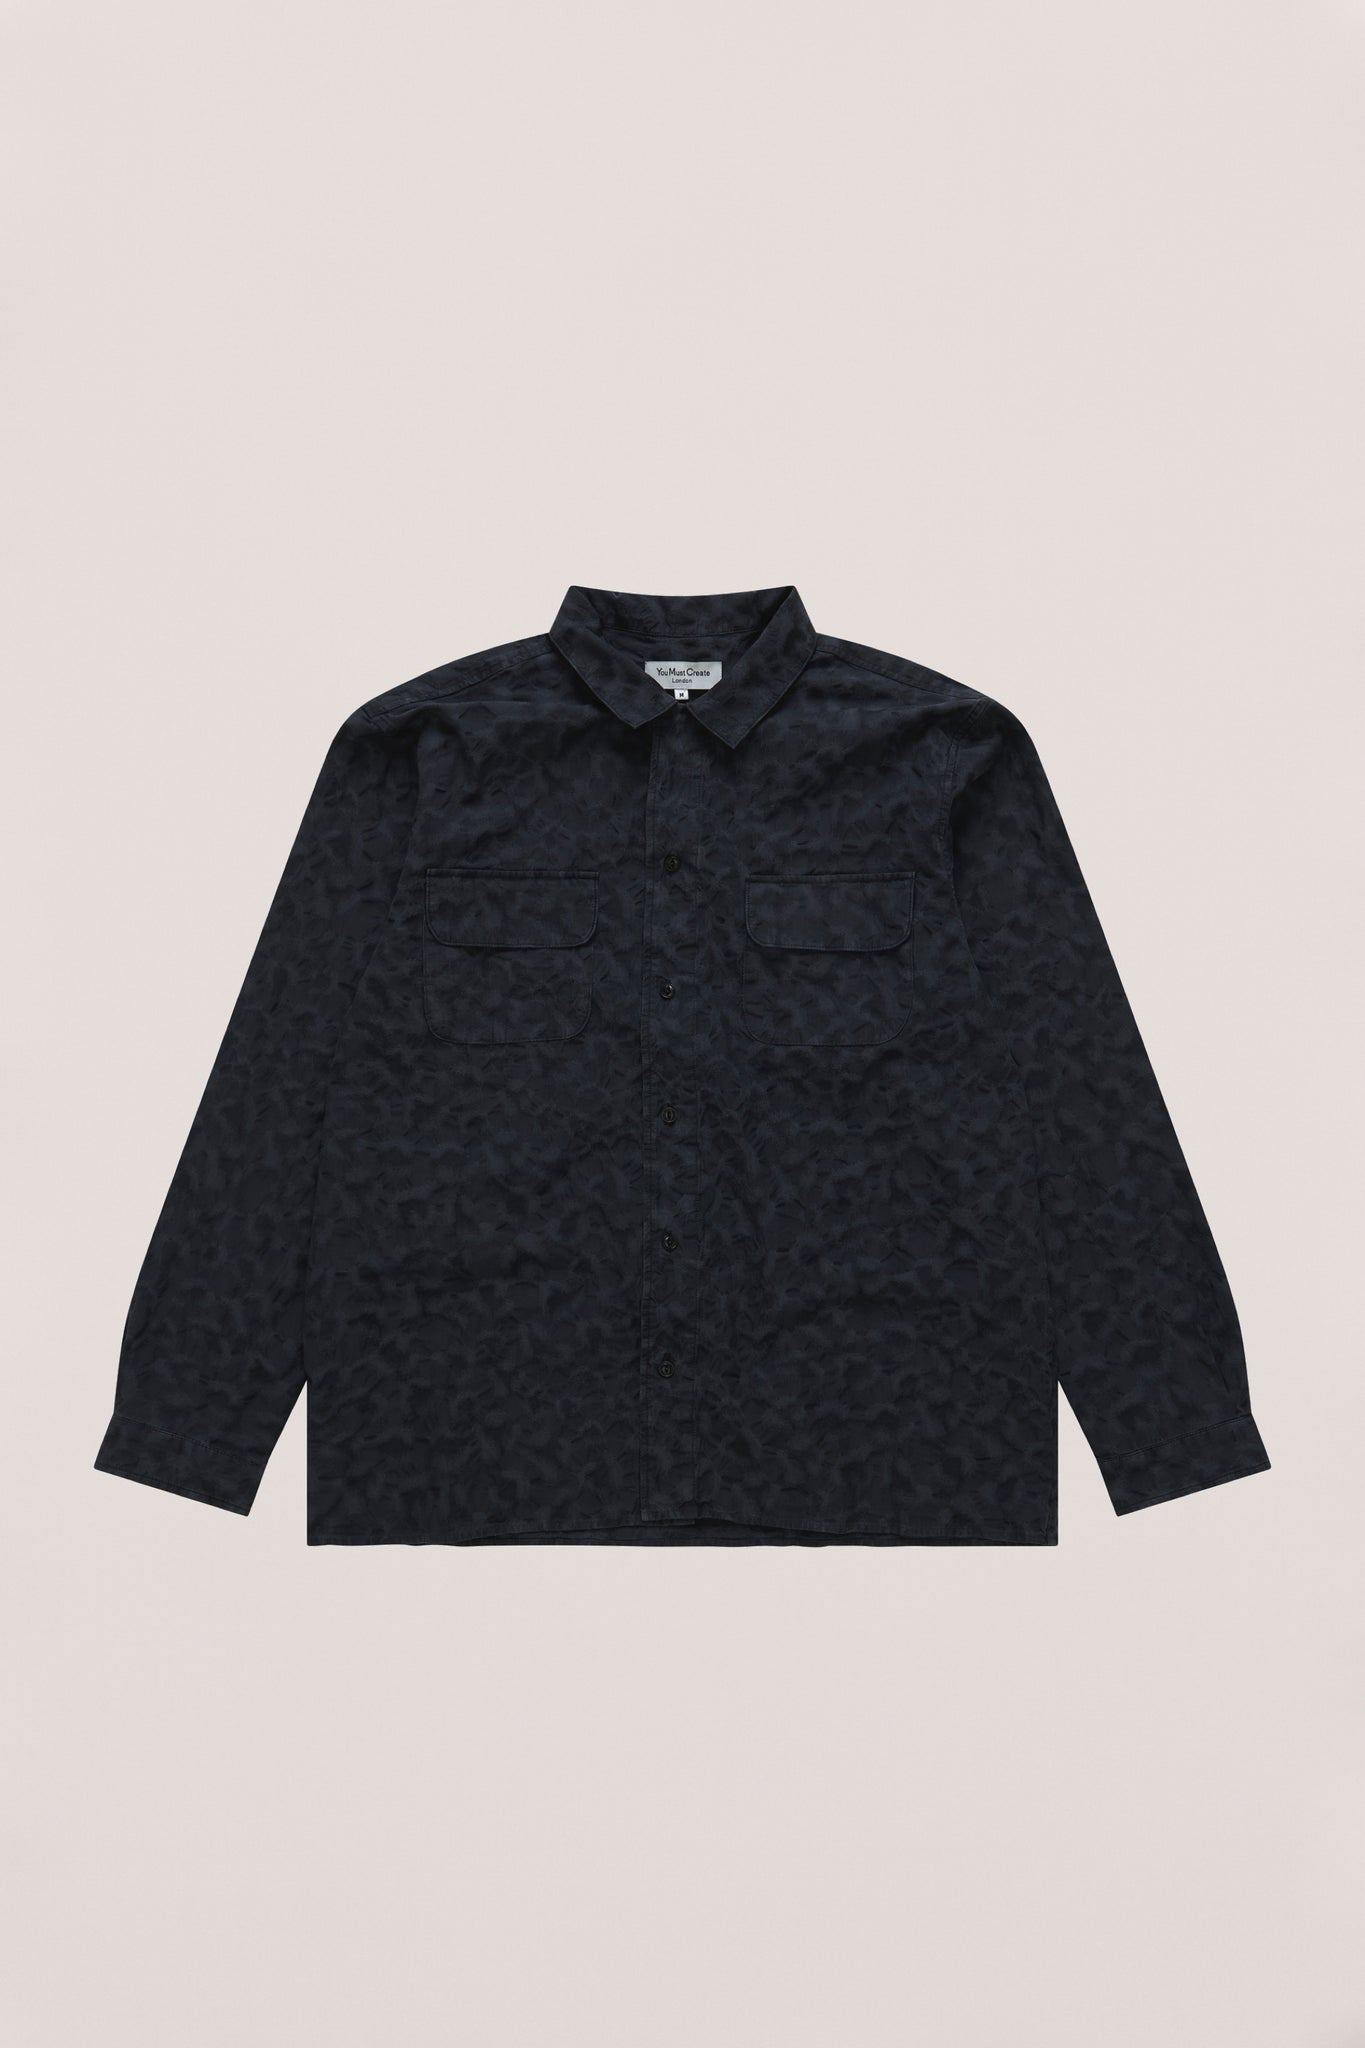 Feathers shirt leopard jacquard black